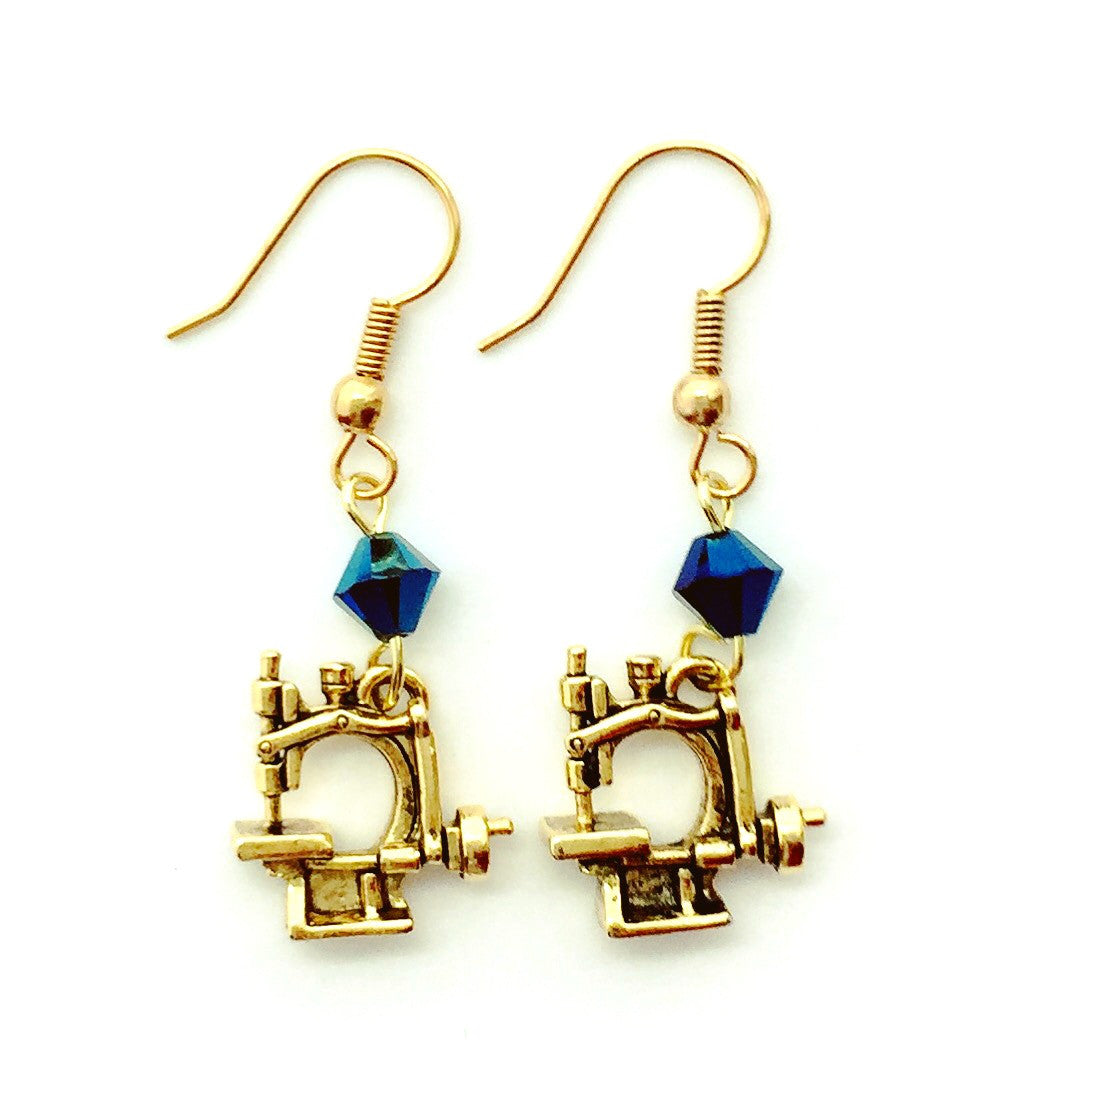 Hand Crank Sewing Machine Gold Earrings with Blue Swarovski Crystals.